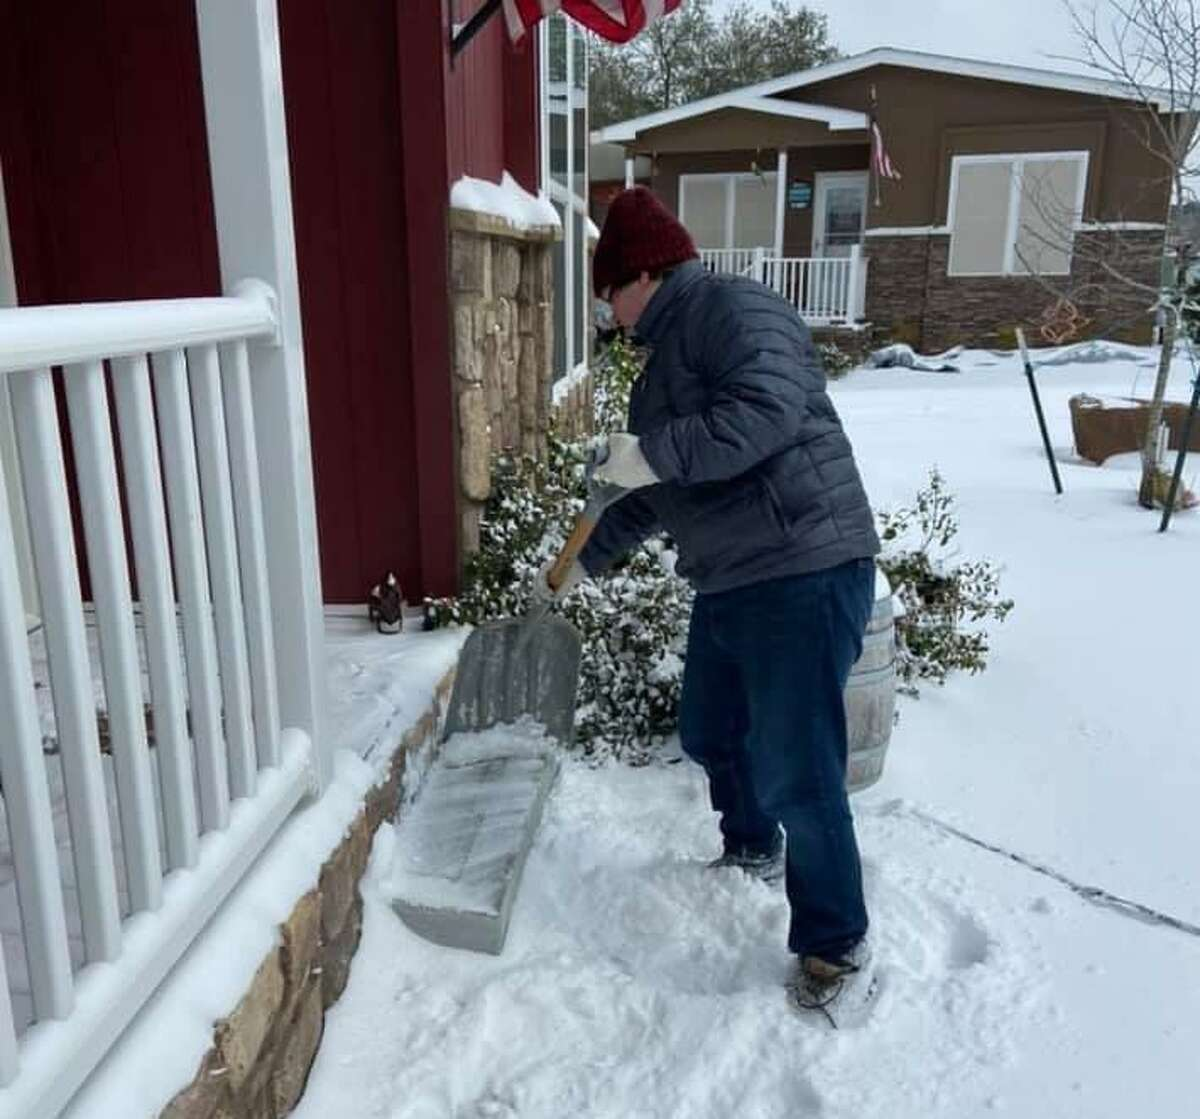 Ben Lake, 17, clears snow off of Jeff and Margie Taylor's porch and steps on Monday. Acts of kindness sprung up around the county as neighbors, friends and even strangers banded together to get through the winter storm that gripped the area.